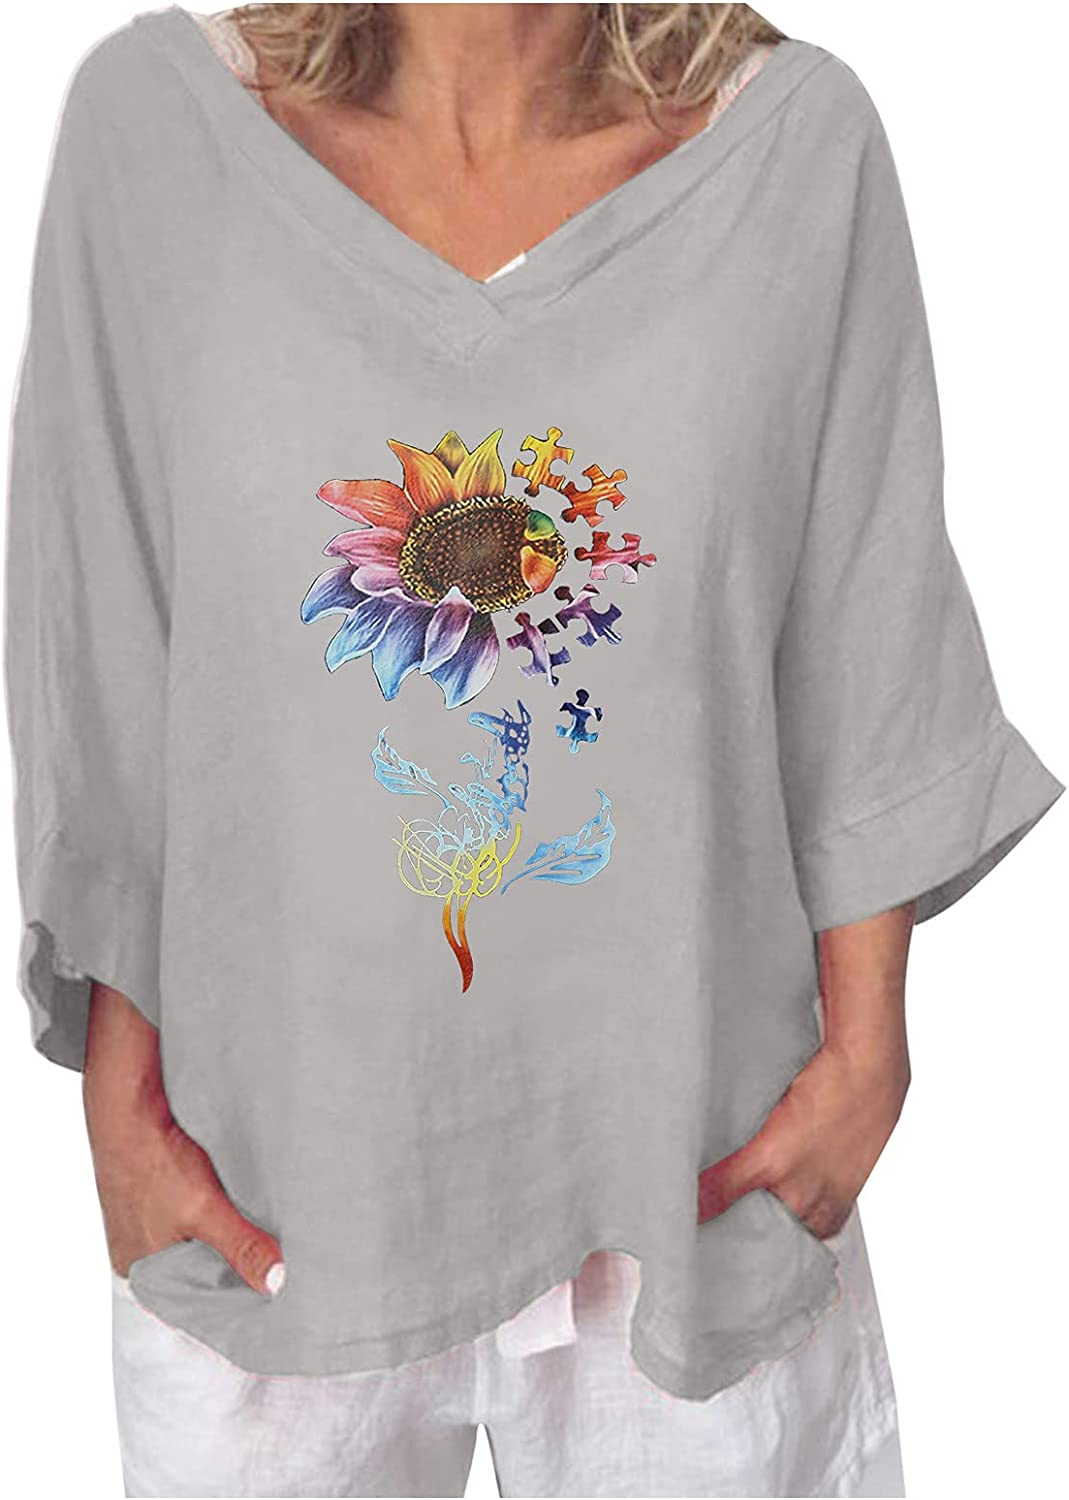 Al sold out. BFSAUHA Women's Casual V Neck Shirts Bell Super intense SALE P 3 Sleeve 4 Butterfly